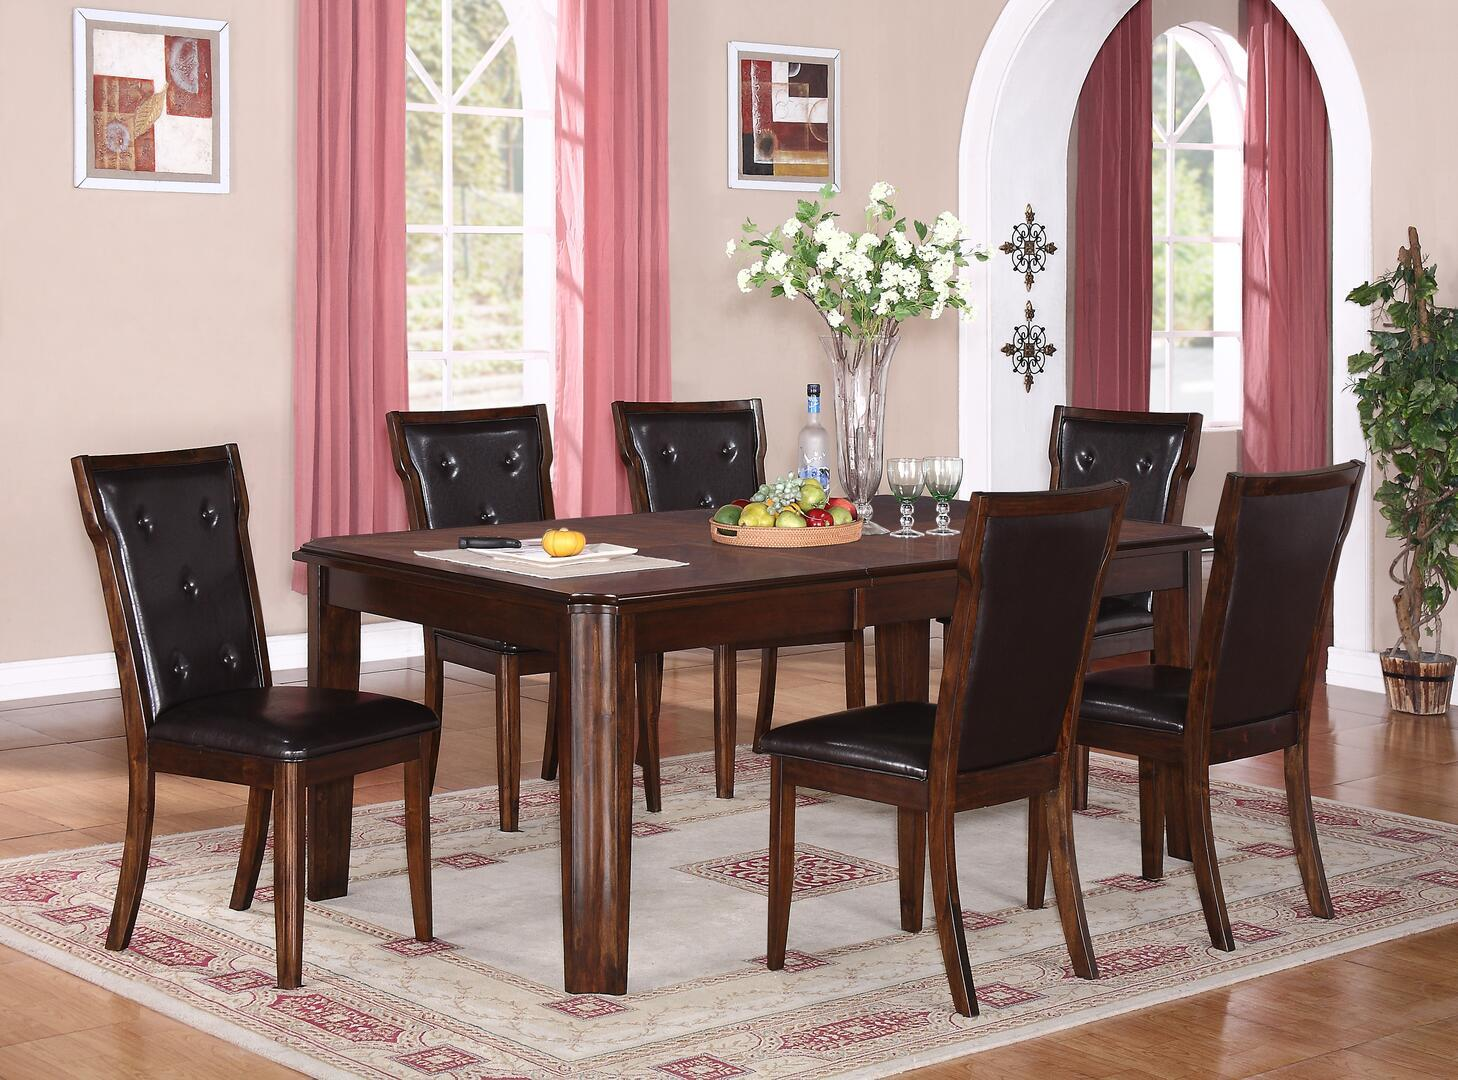 Transitional Espresso Faux Leather Dining Room Set 8 pcs Cosmos Furniture Pam-Set-8